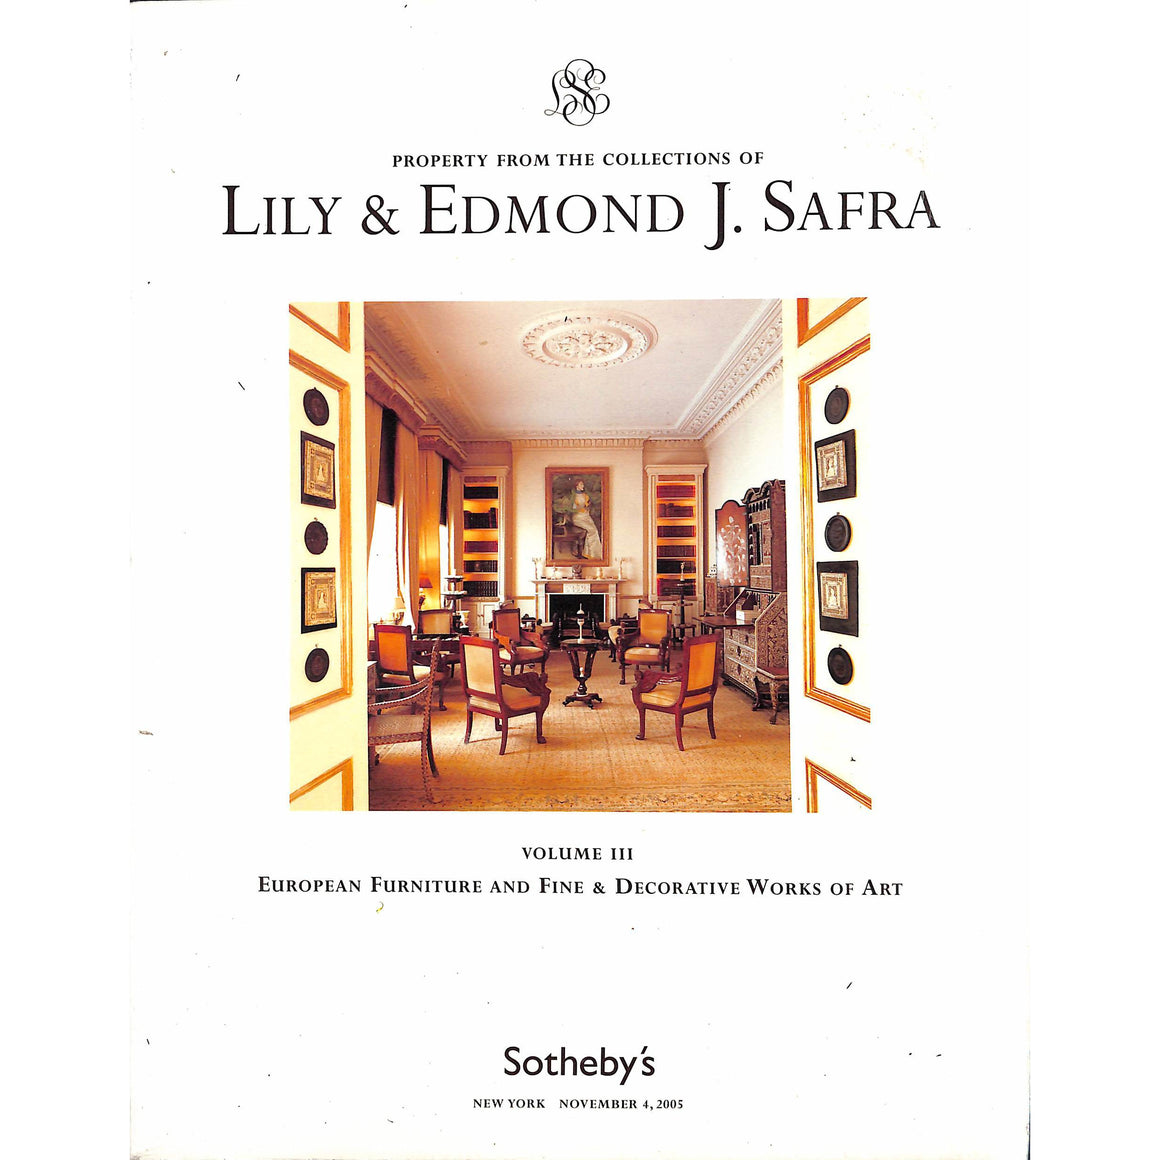 Property From the Collections of Lily & Edmond J. Safra Volume III